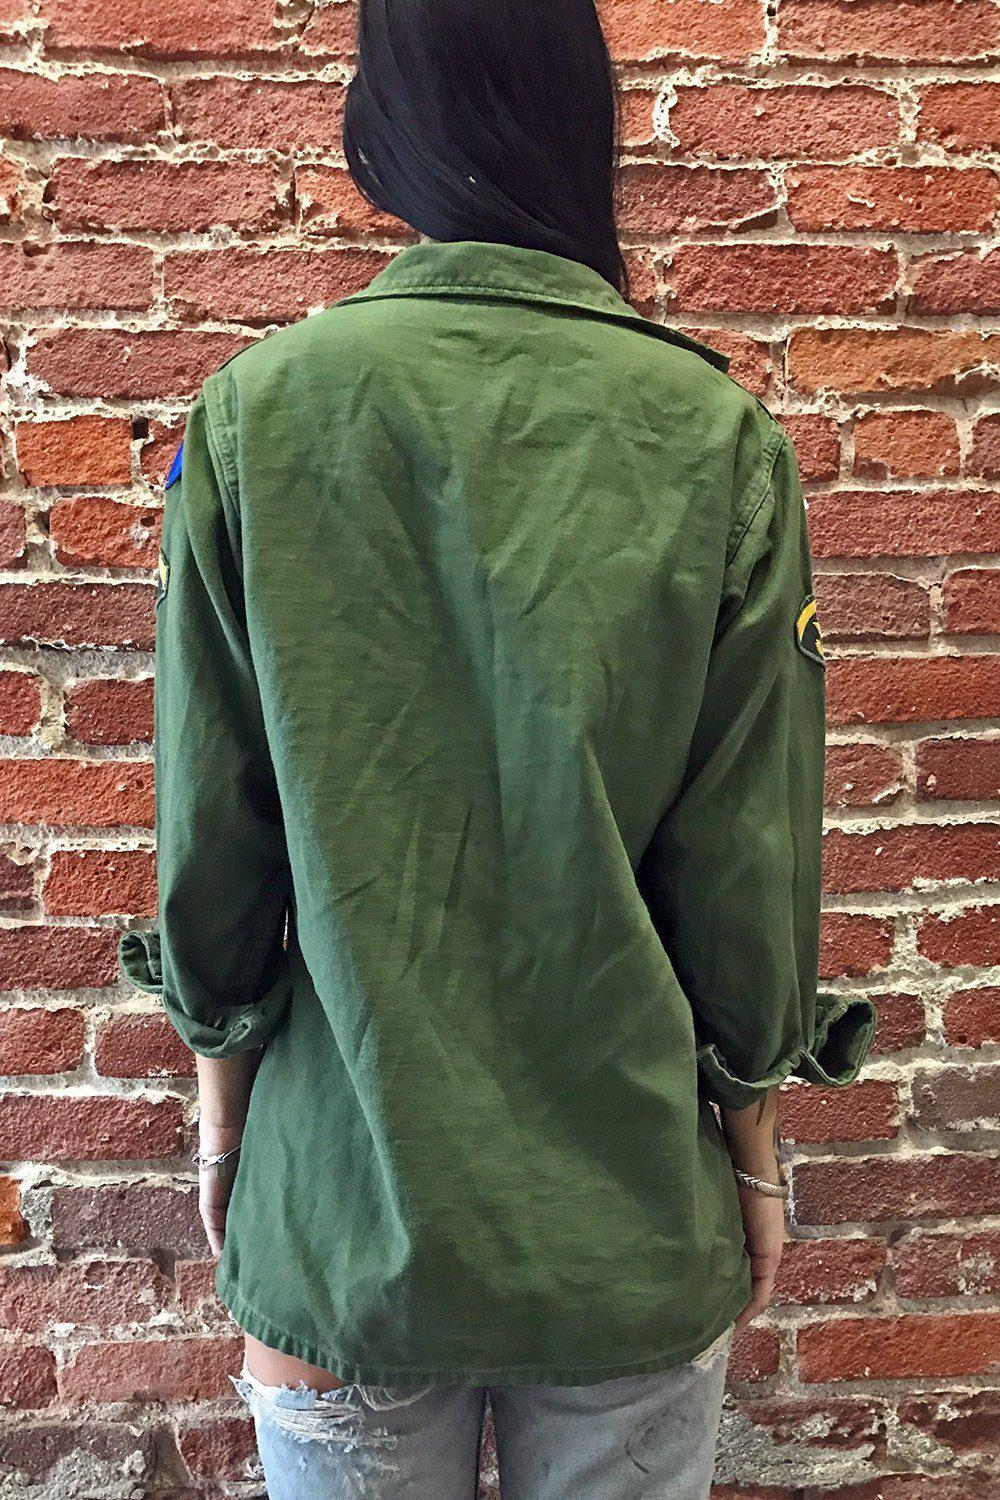 Thin & Worn Patched US Army Jacket